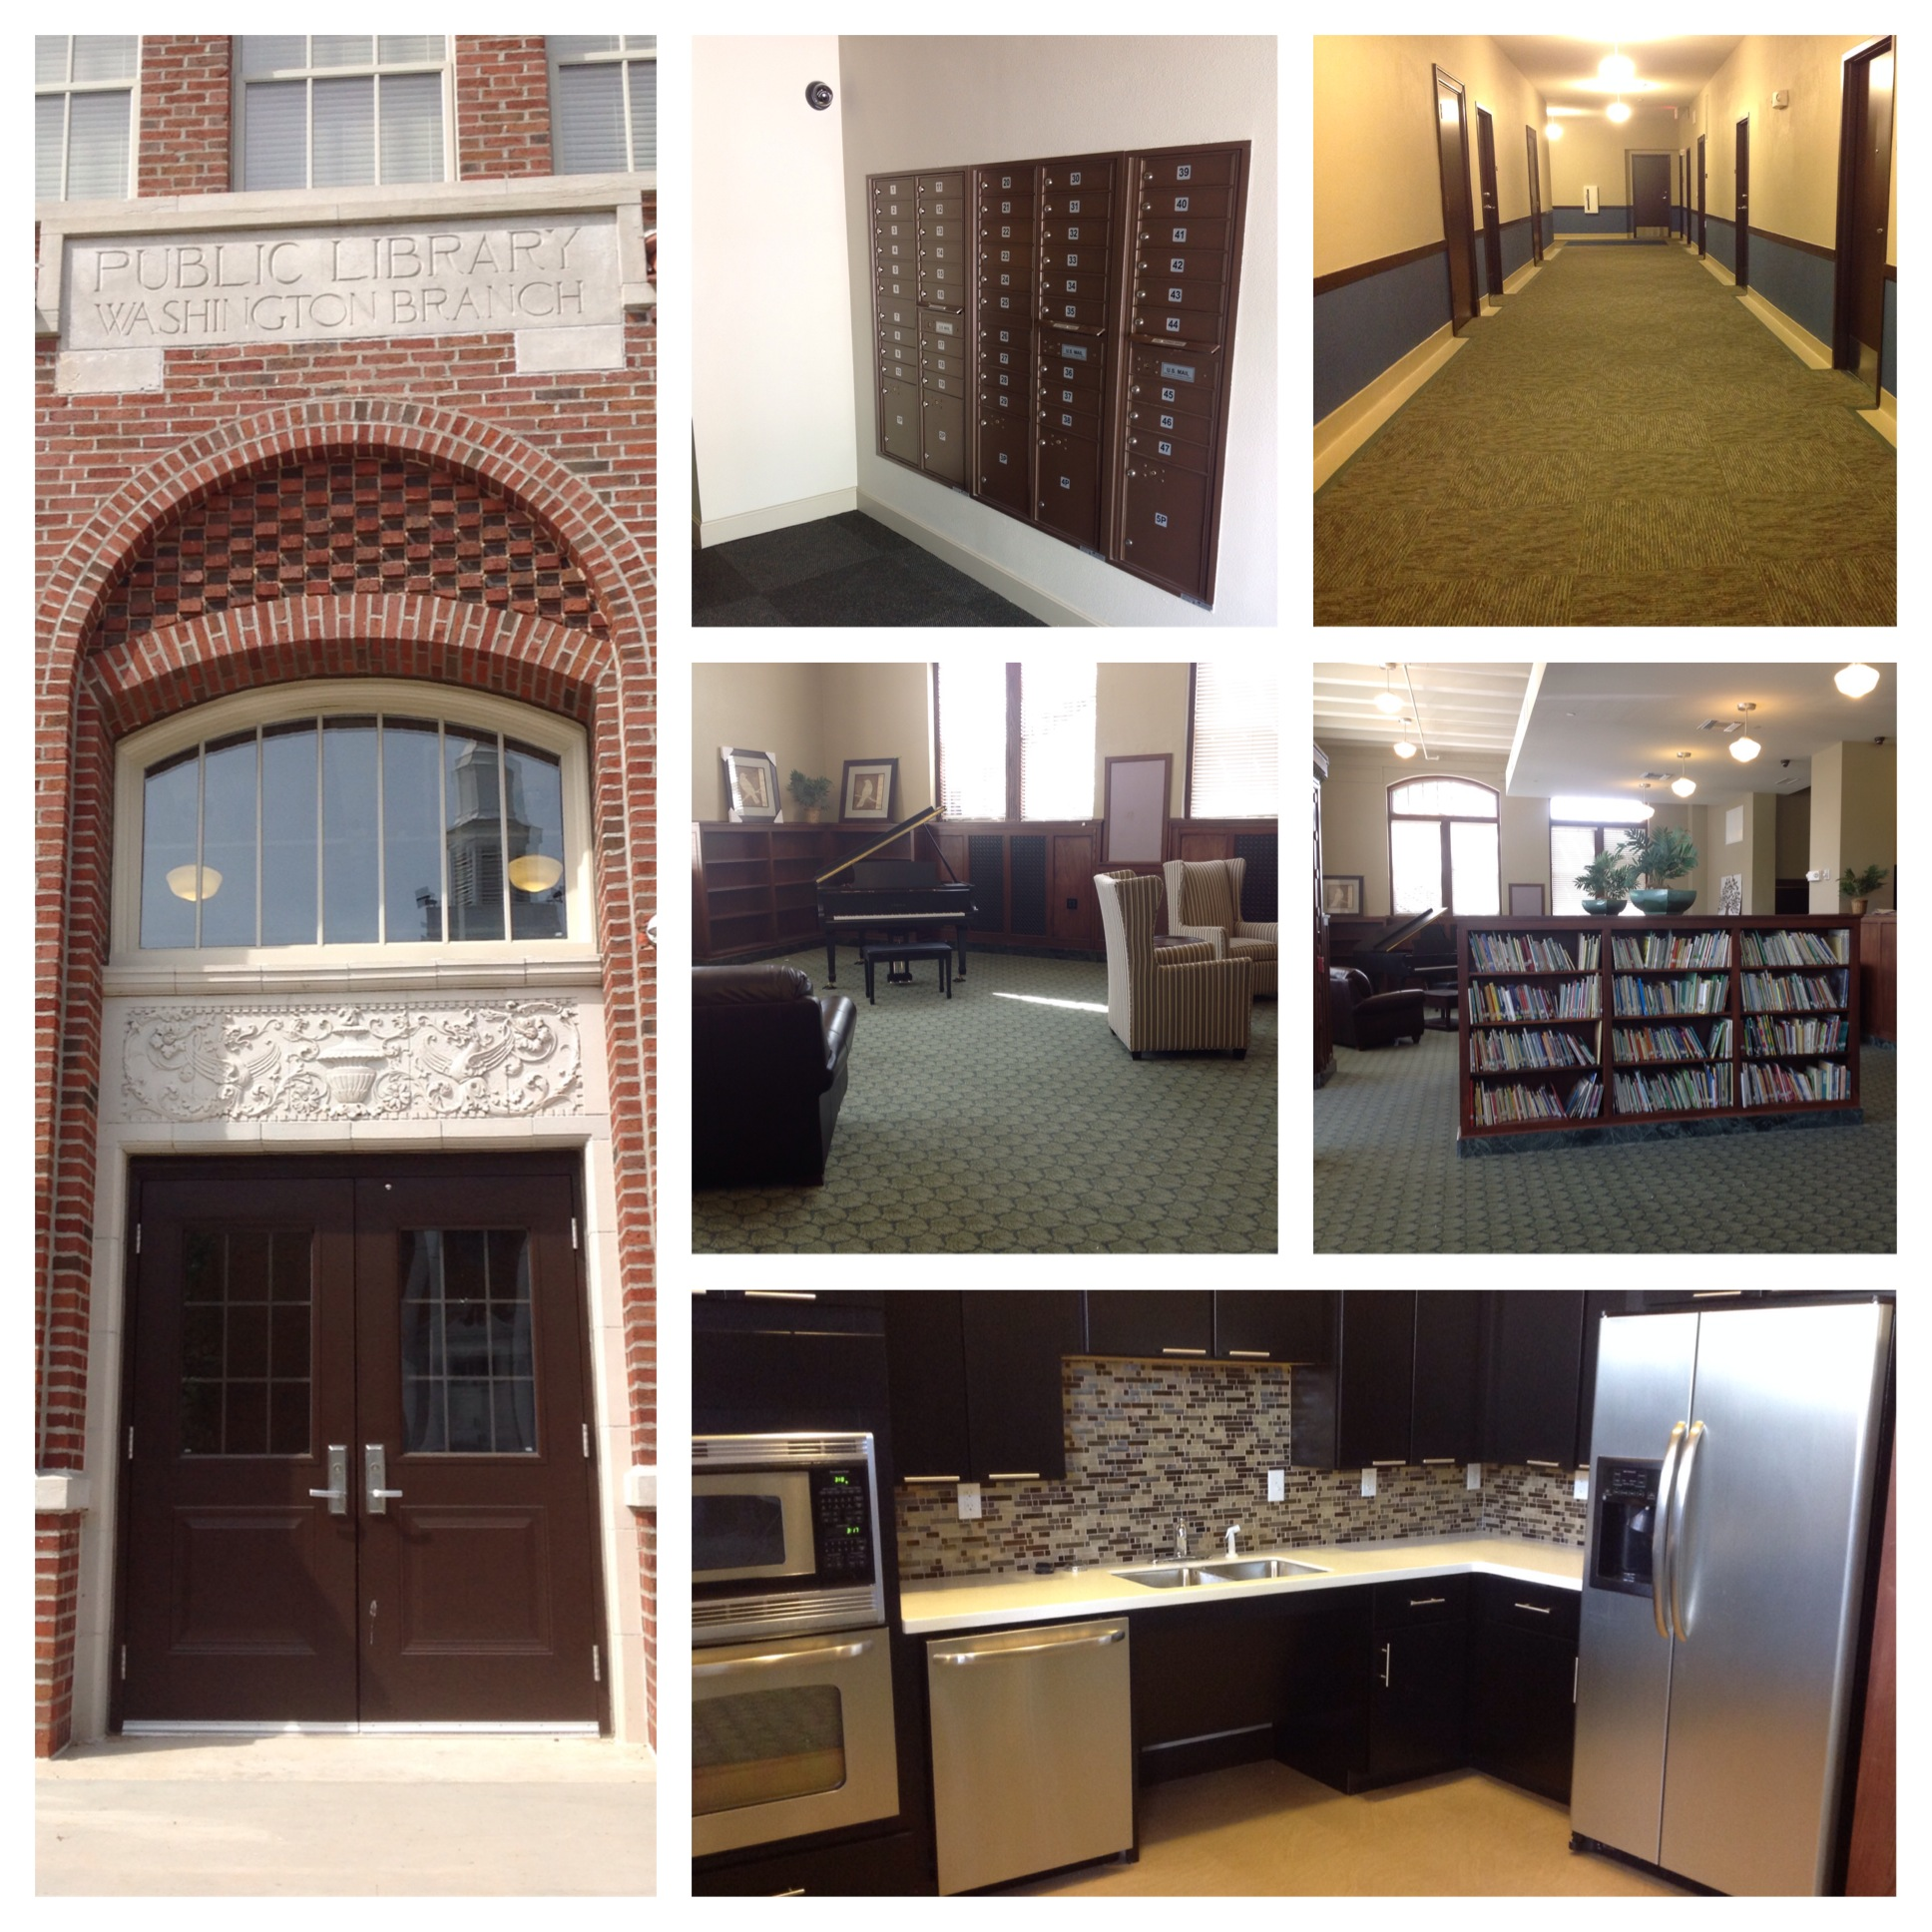 COMMERCIAL REMODEL - LIBRARY